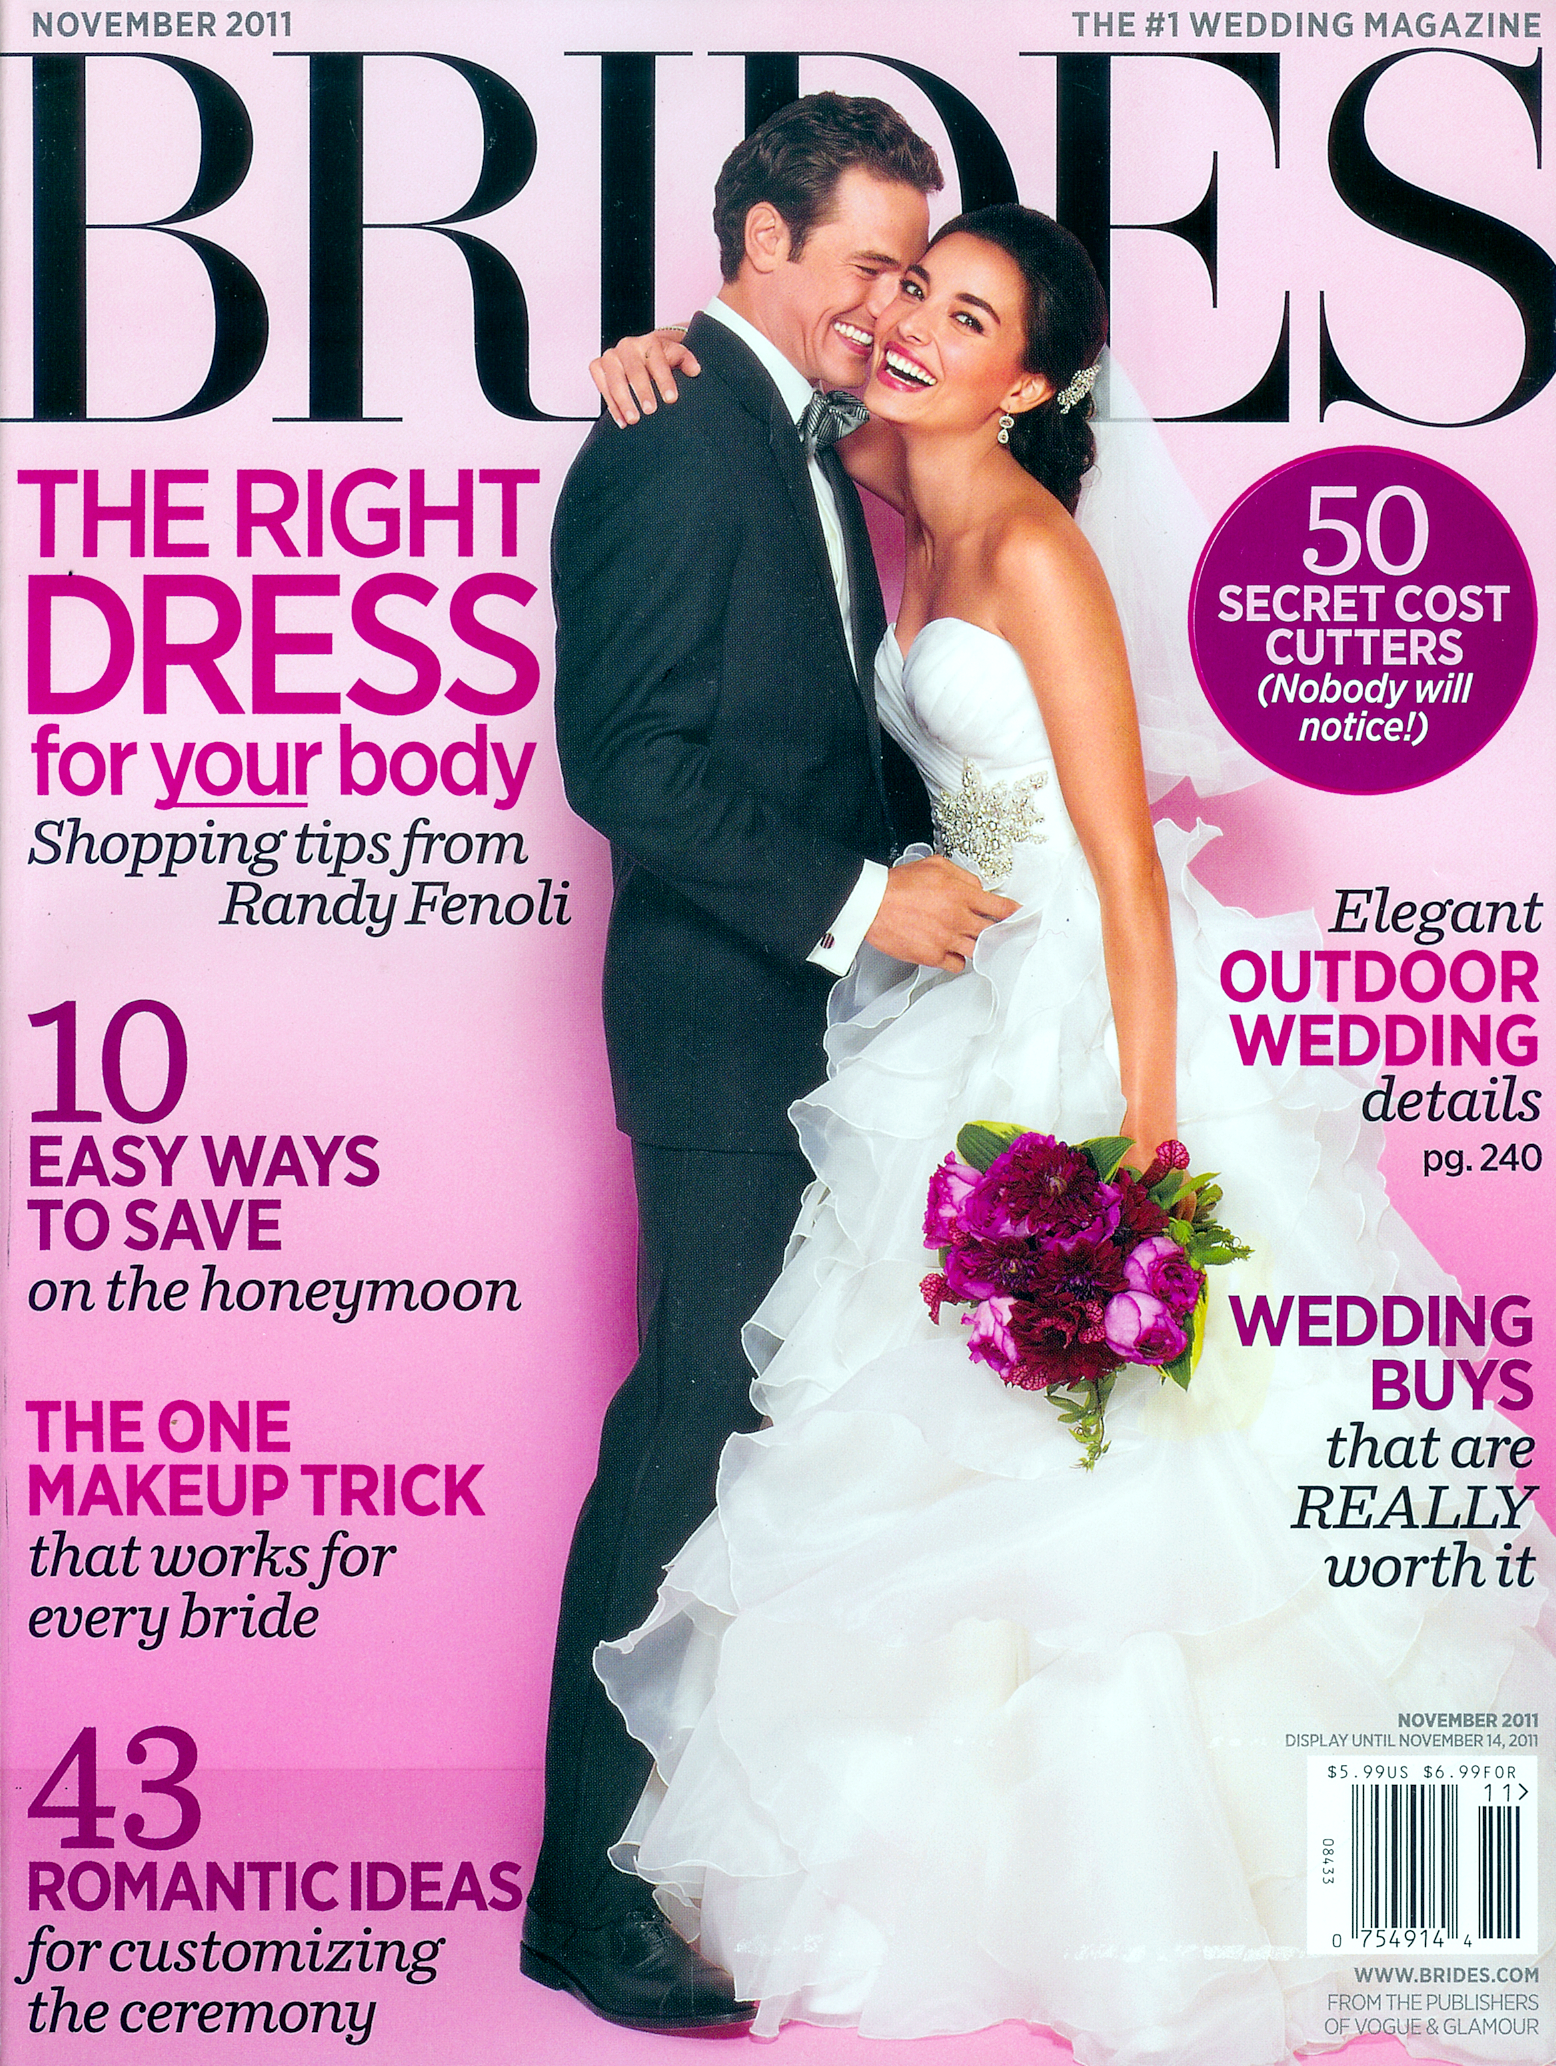 BridesNov11Cover.jpg